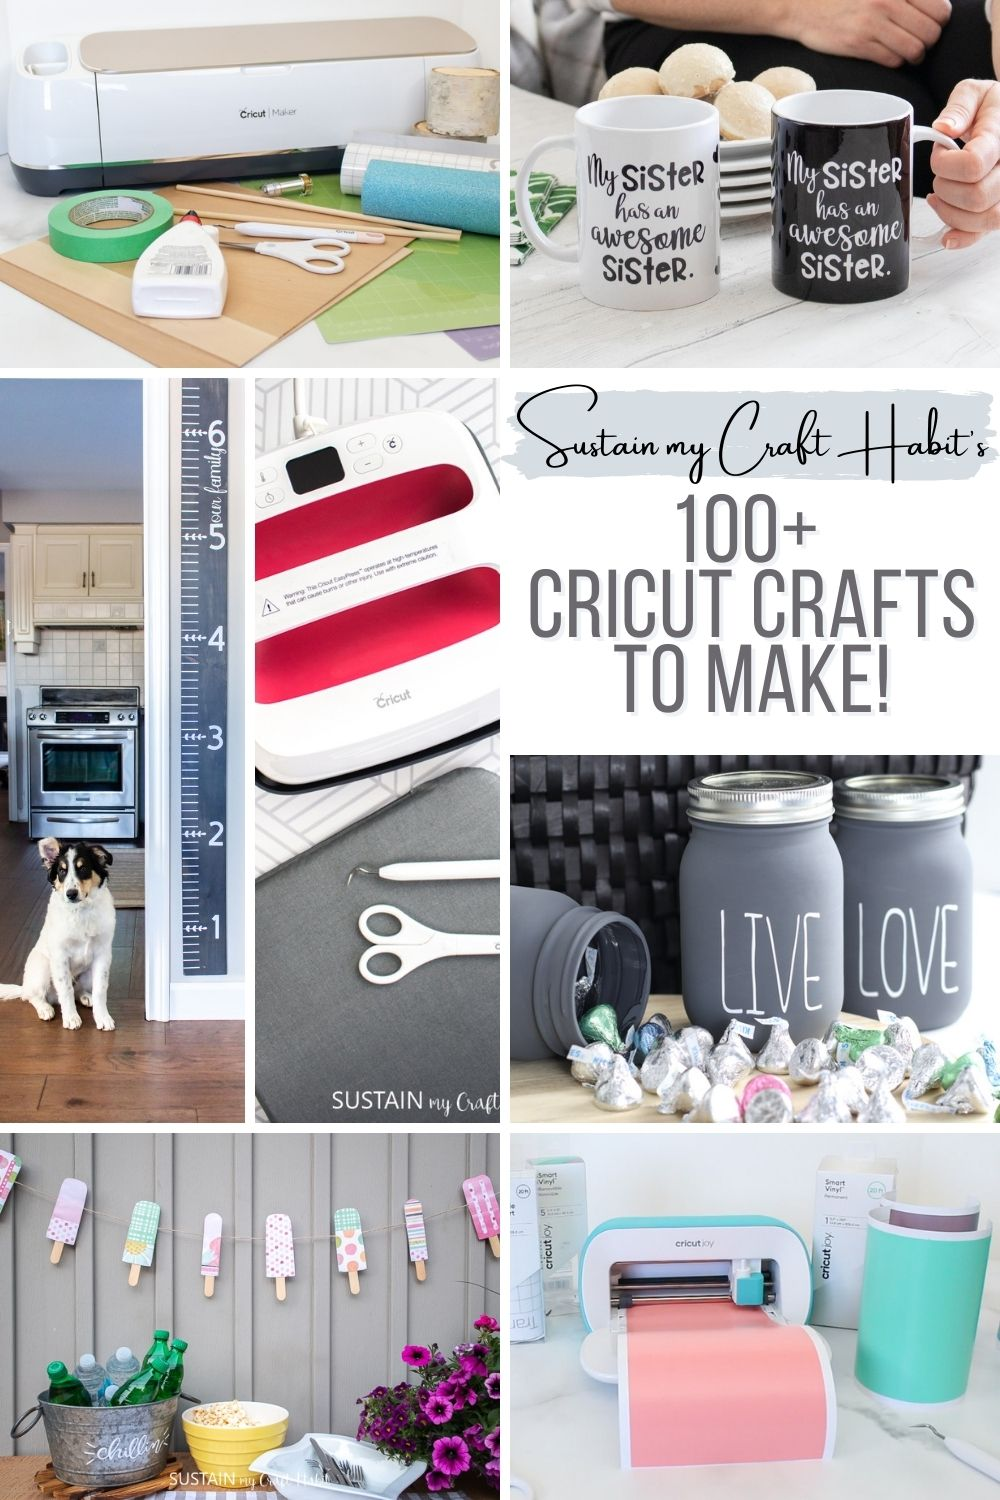 Collage of Cricut craft ideas to make